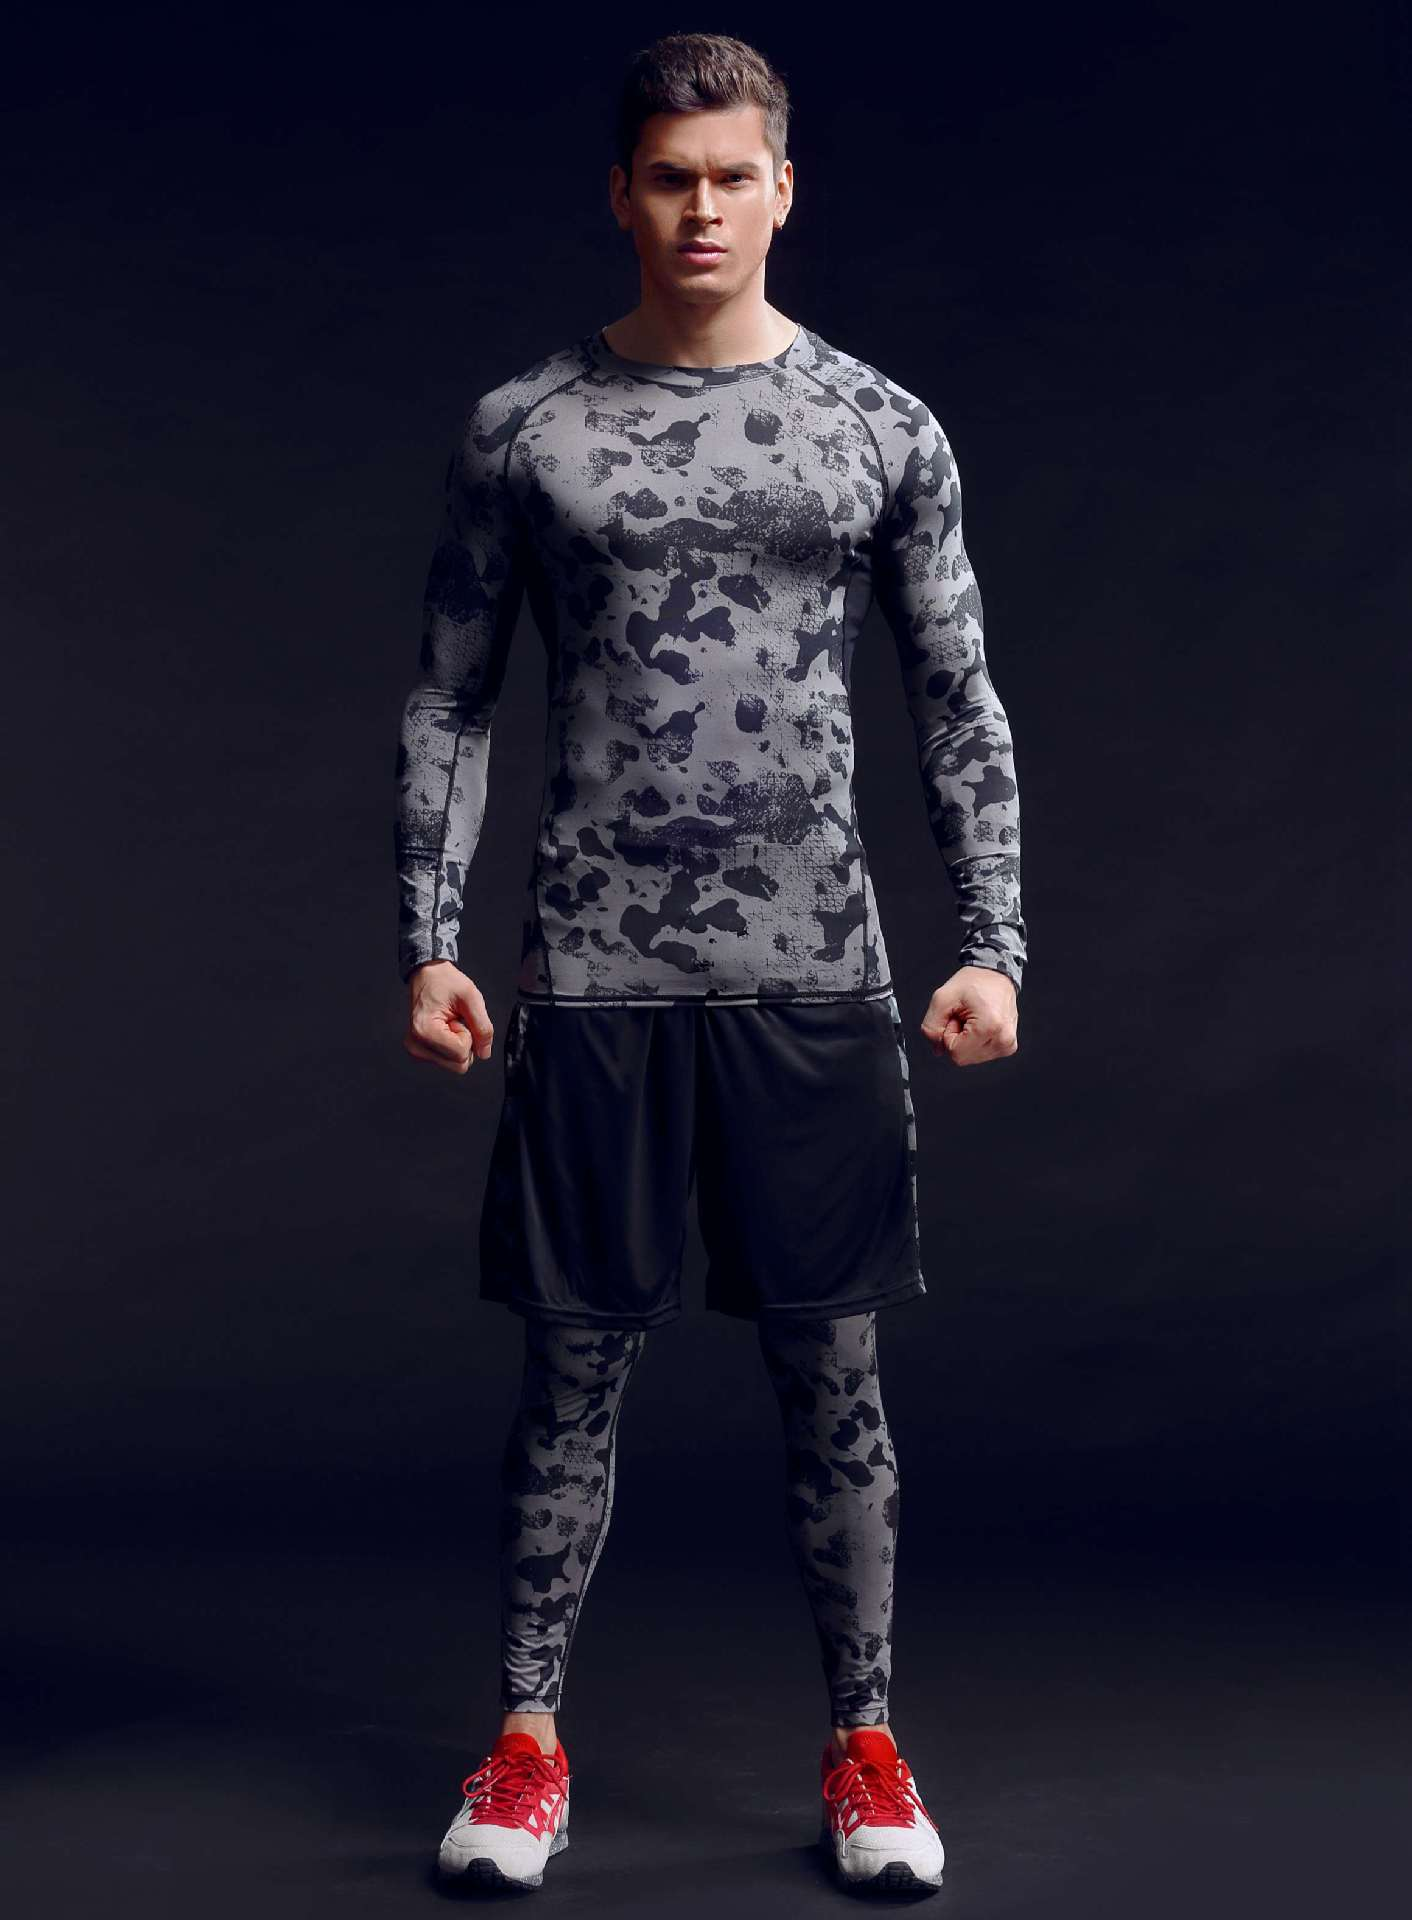 2017 camouflage 3pcs/set Men's Sport Running Suits Quick Dry Basketball Soccer Training Tracksuits Men Gym Clothing Sets 2017 compression 5pcs men fitness clothing sets quick dry sports running suit hood basketball soccer gym training jogging suits